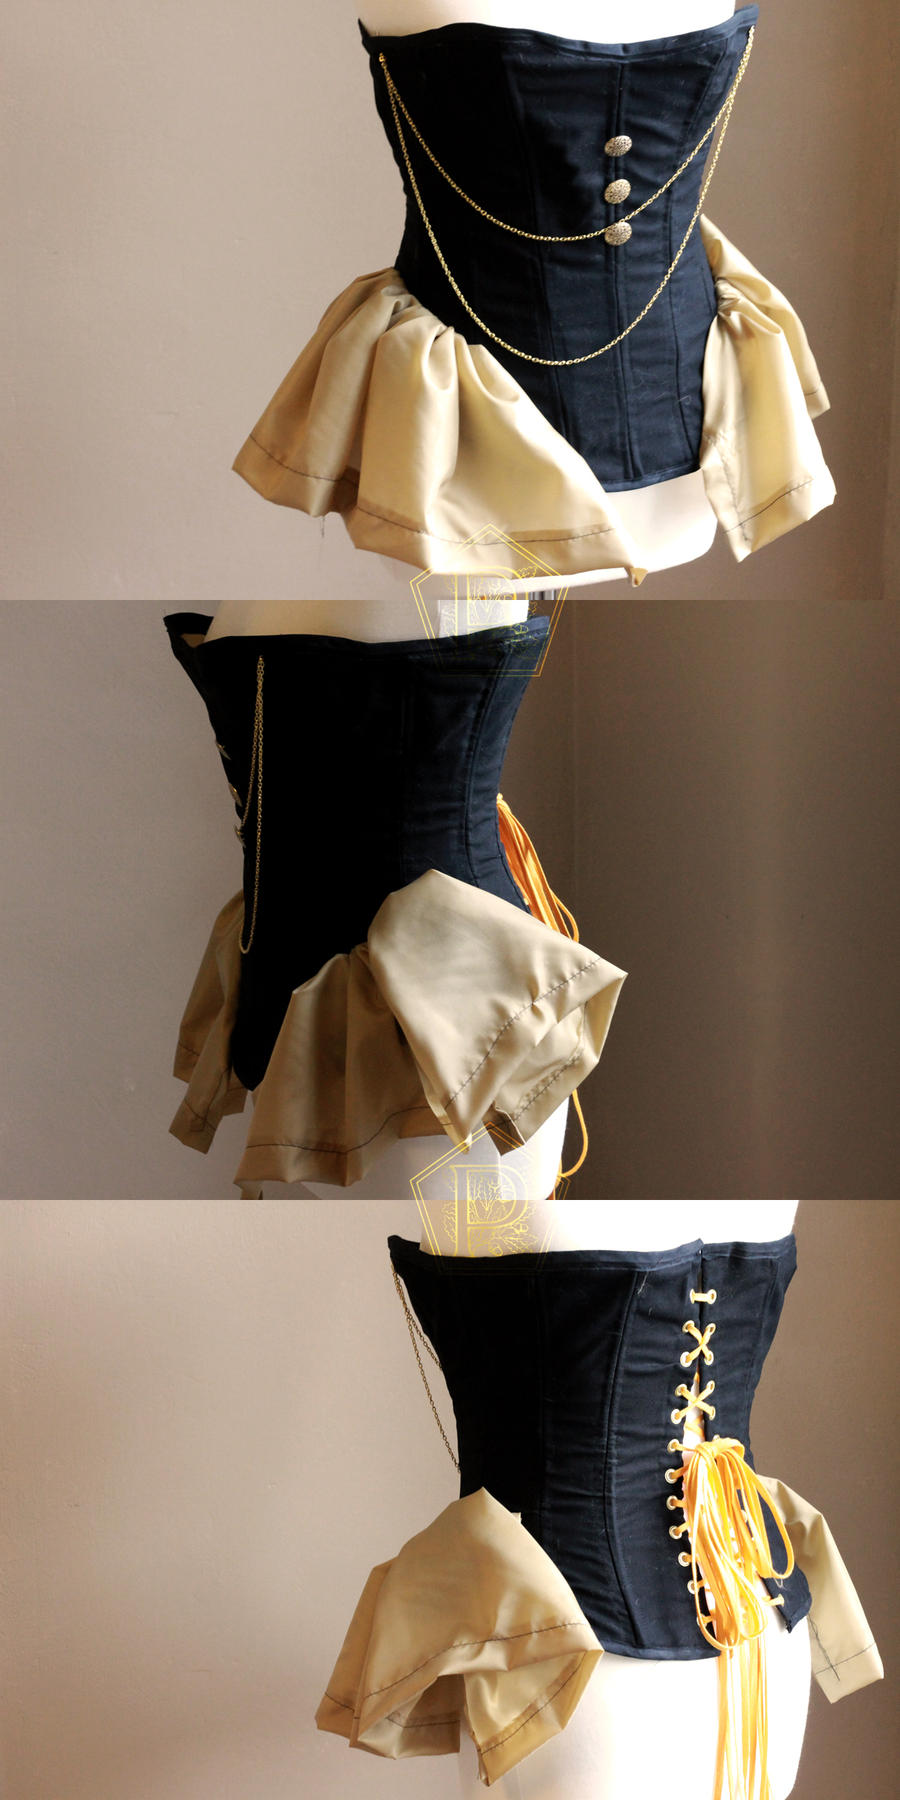 Handmade steampunk steel-bones corset by pendorabox